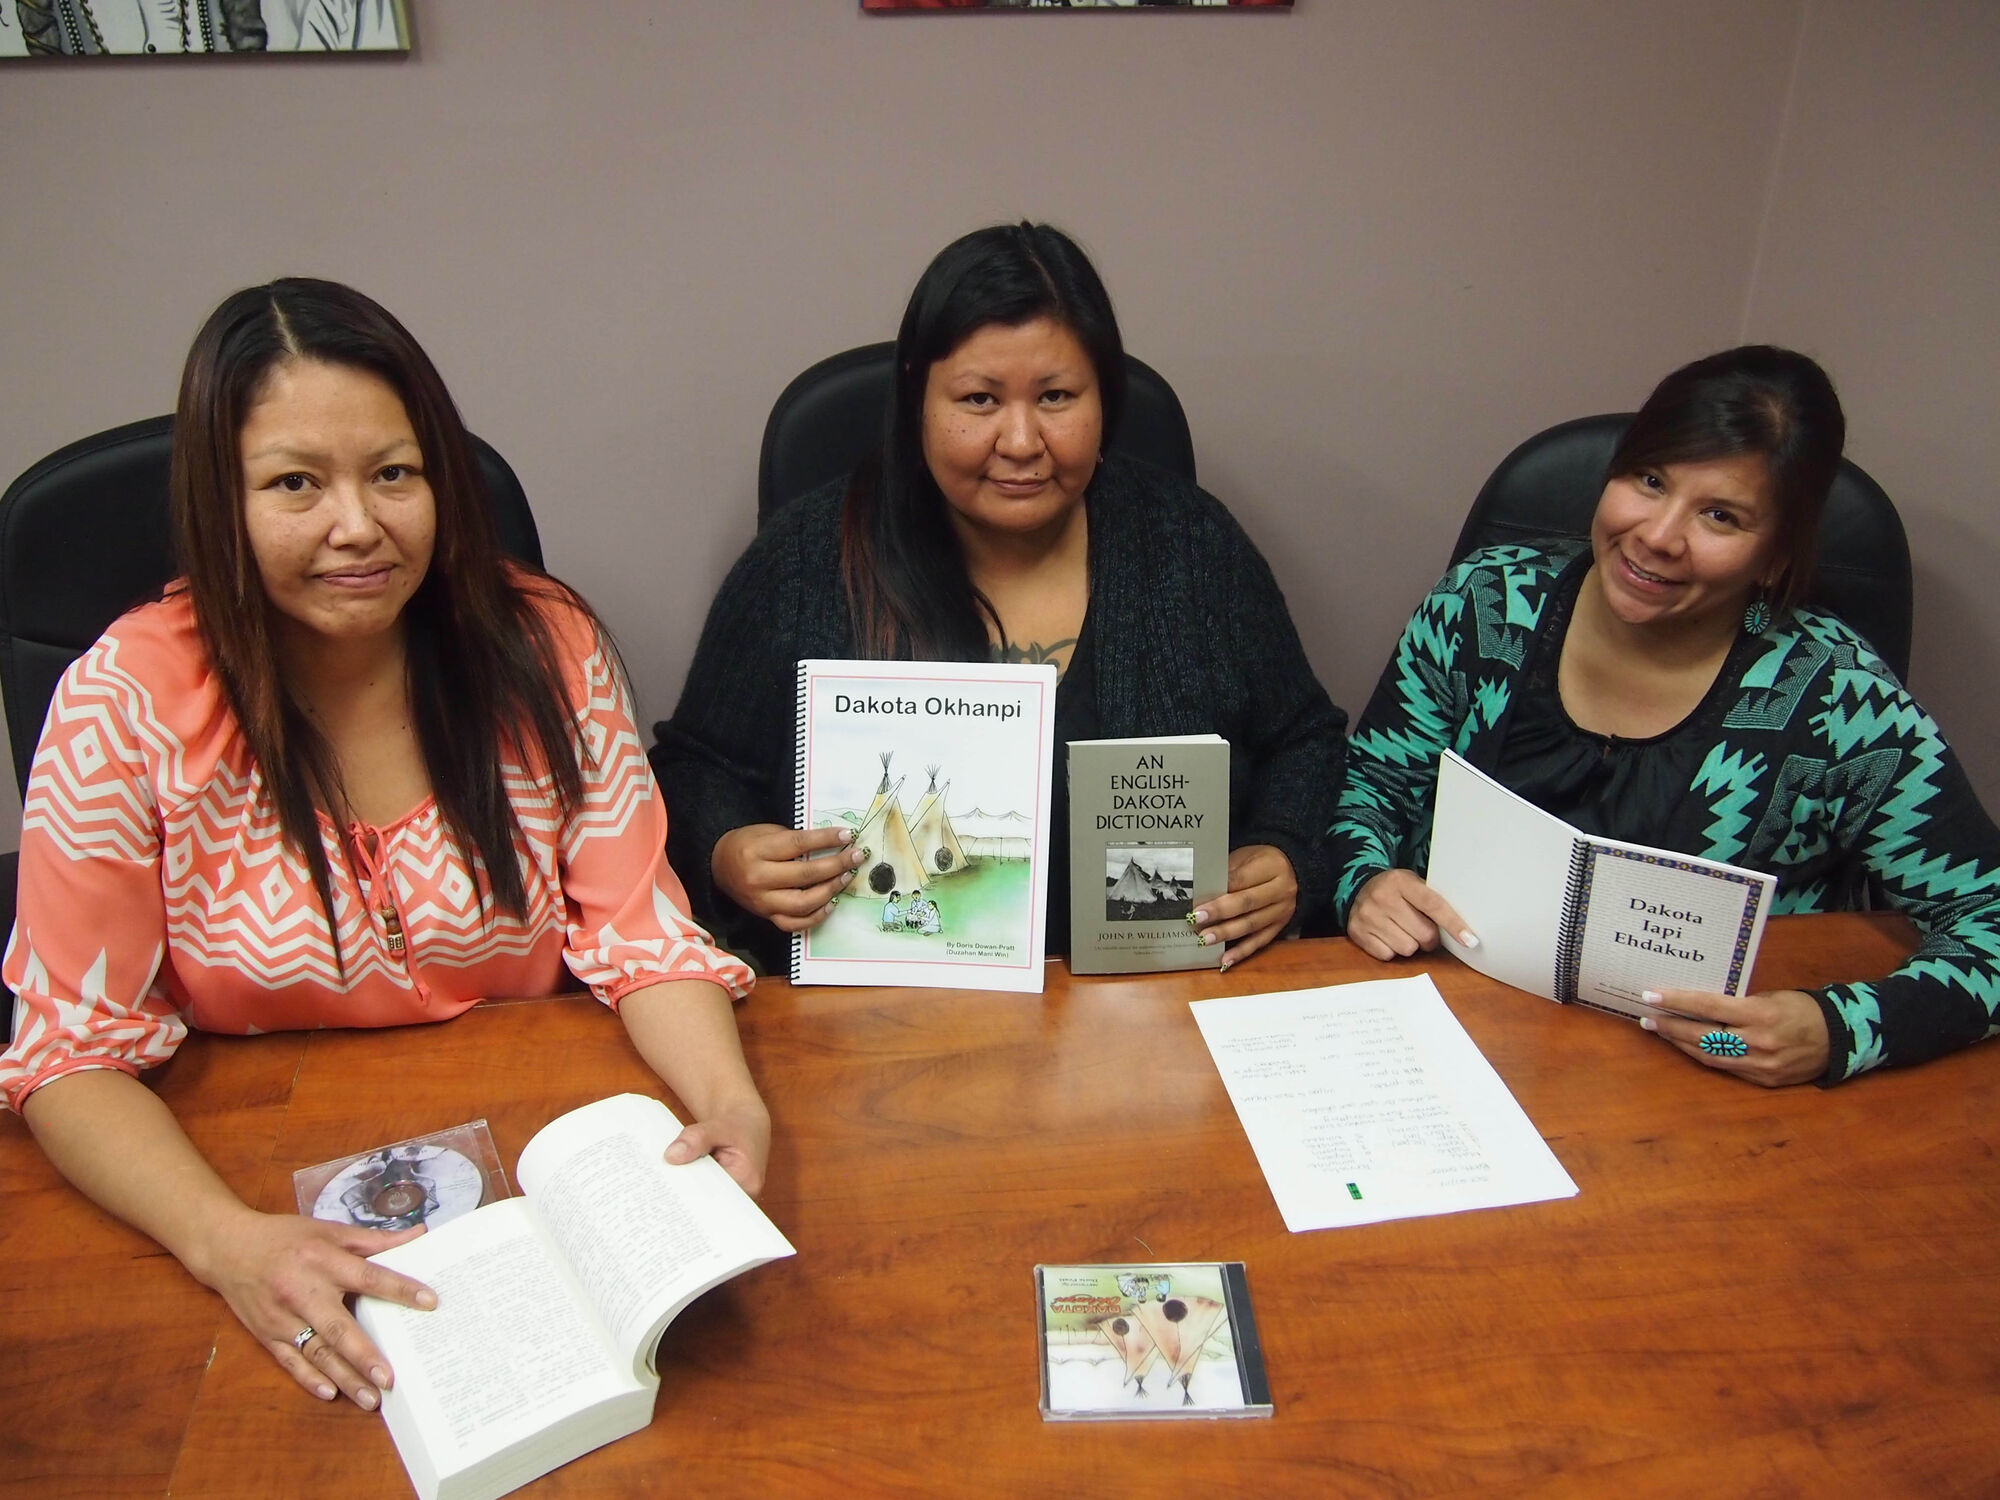 Carol Johnson, Donna Elk and Jennifer Bone of Sioux Valley Dakota Nation hold up some of the Dakota language resource materials being used to help other members learn the language during classes being held on Wednesday evenings.